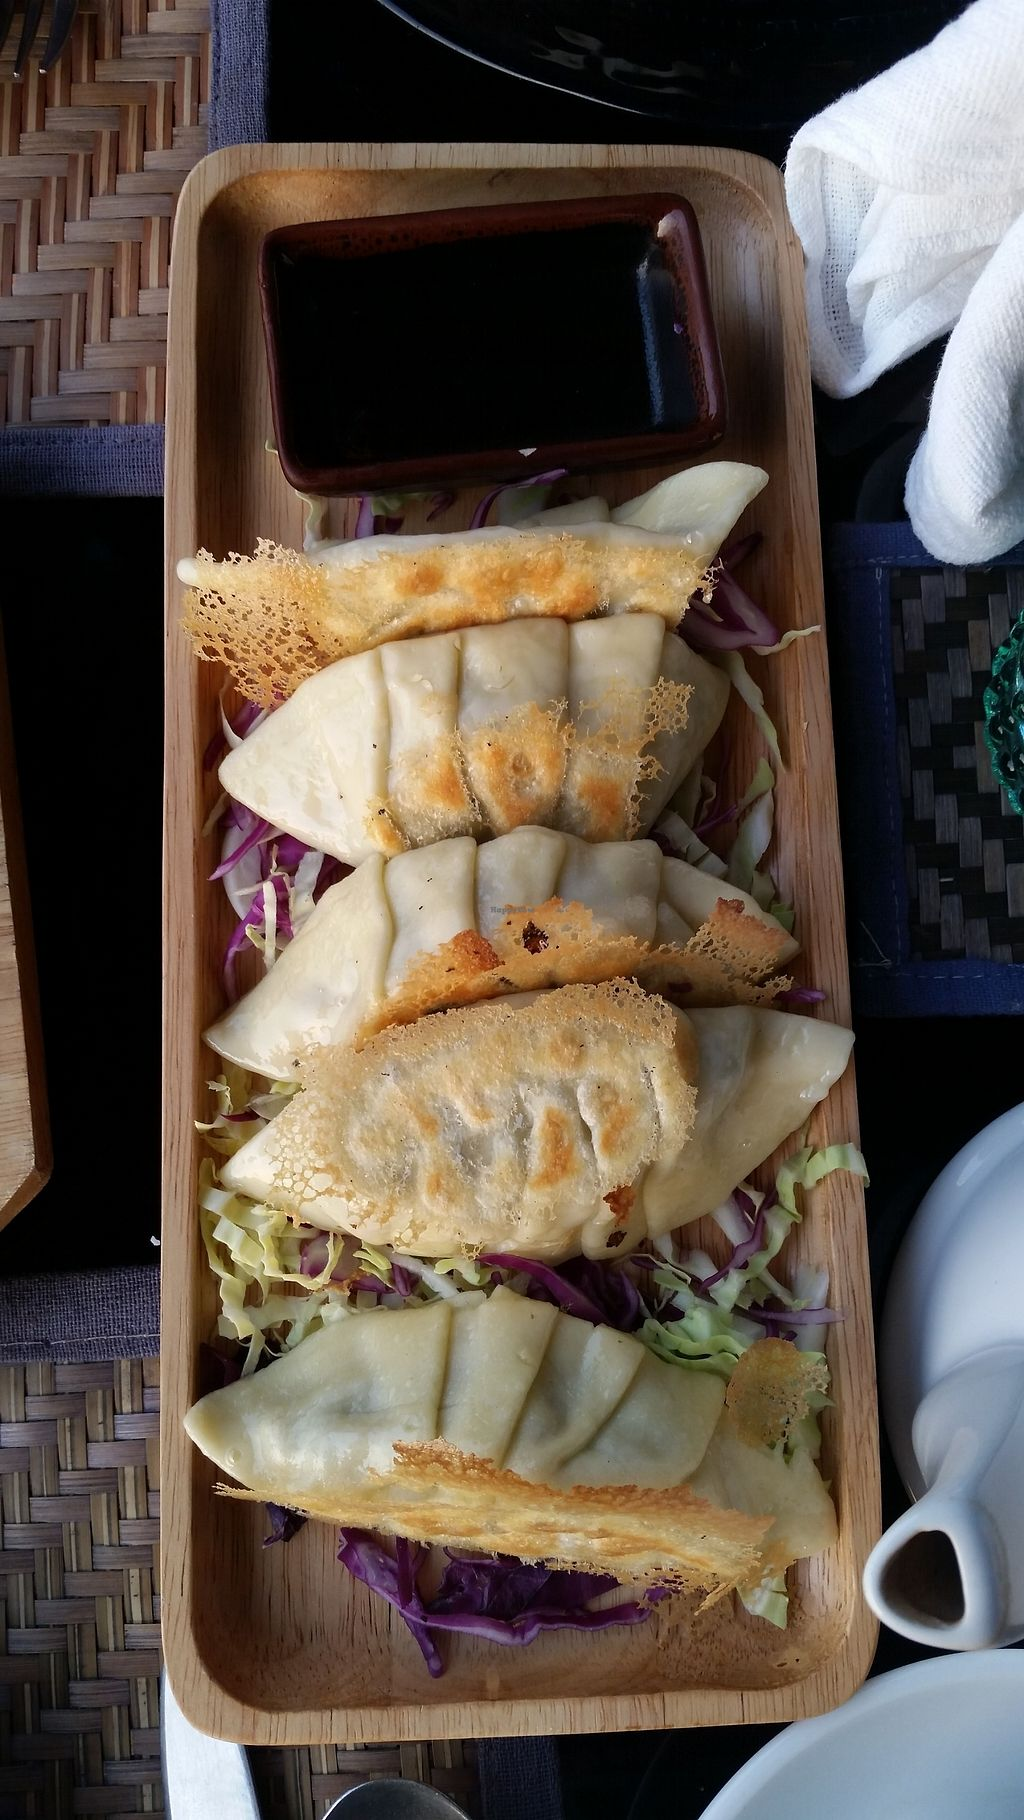 """Photo of Ock Pop Tok Living Craft Centre  by <a href=""""/members/profile/Nimeda"""">Nimeda</a> <br/>Vegan steamed dumplings with mushroom filling <br/> February 14, 2018  - <a href='/contact/abuse/image/111949/359051'>Report</a>"""